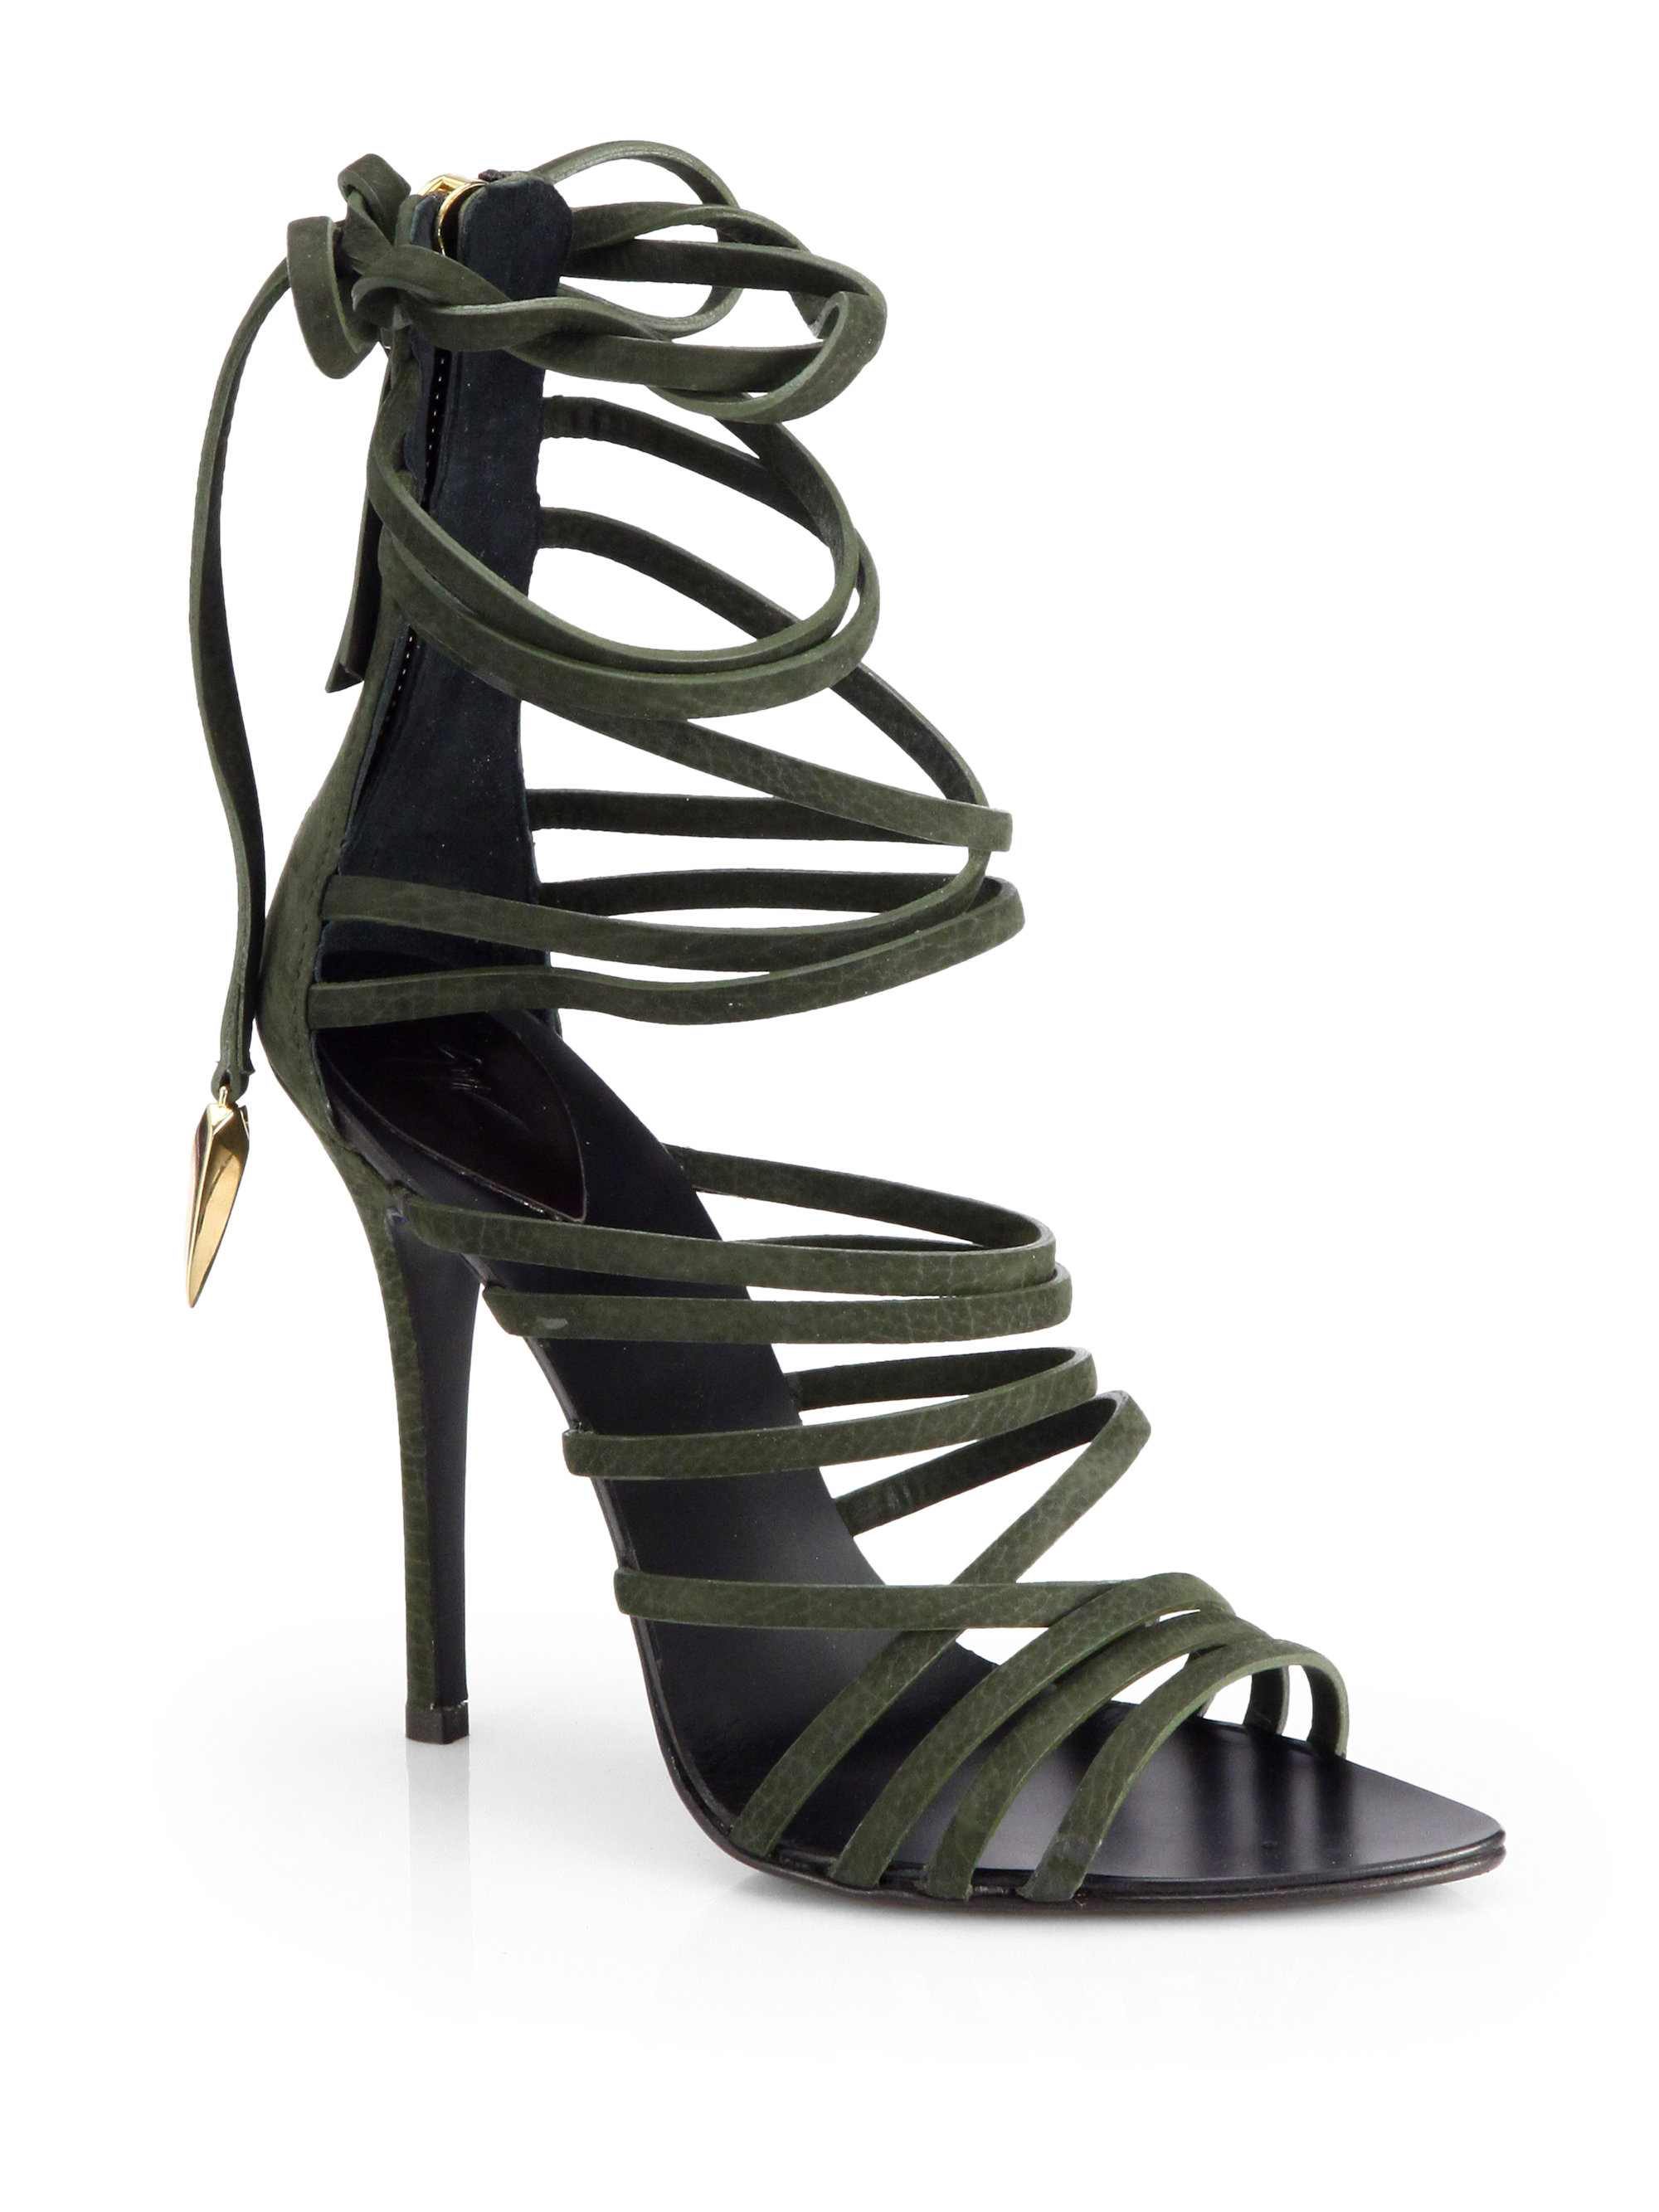 Giuseppe zanotti Leather Strappy Tieup Sandals in Green  Lyst